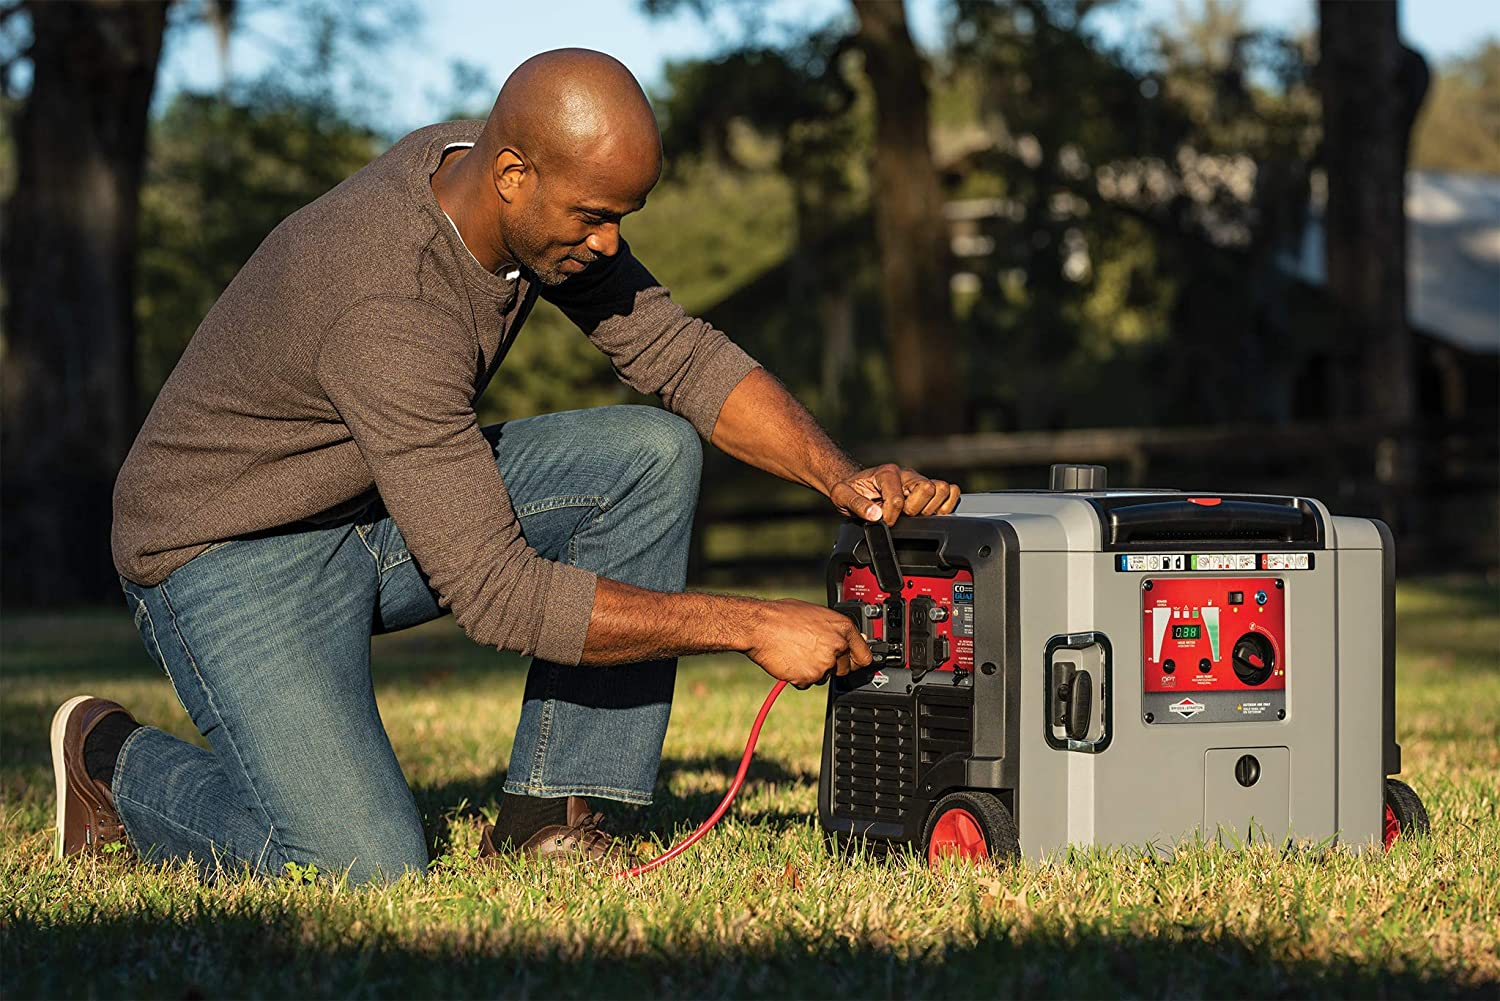 Briggs & Stratton P4500 Power Smart Series Inverter Generator